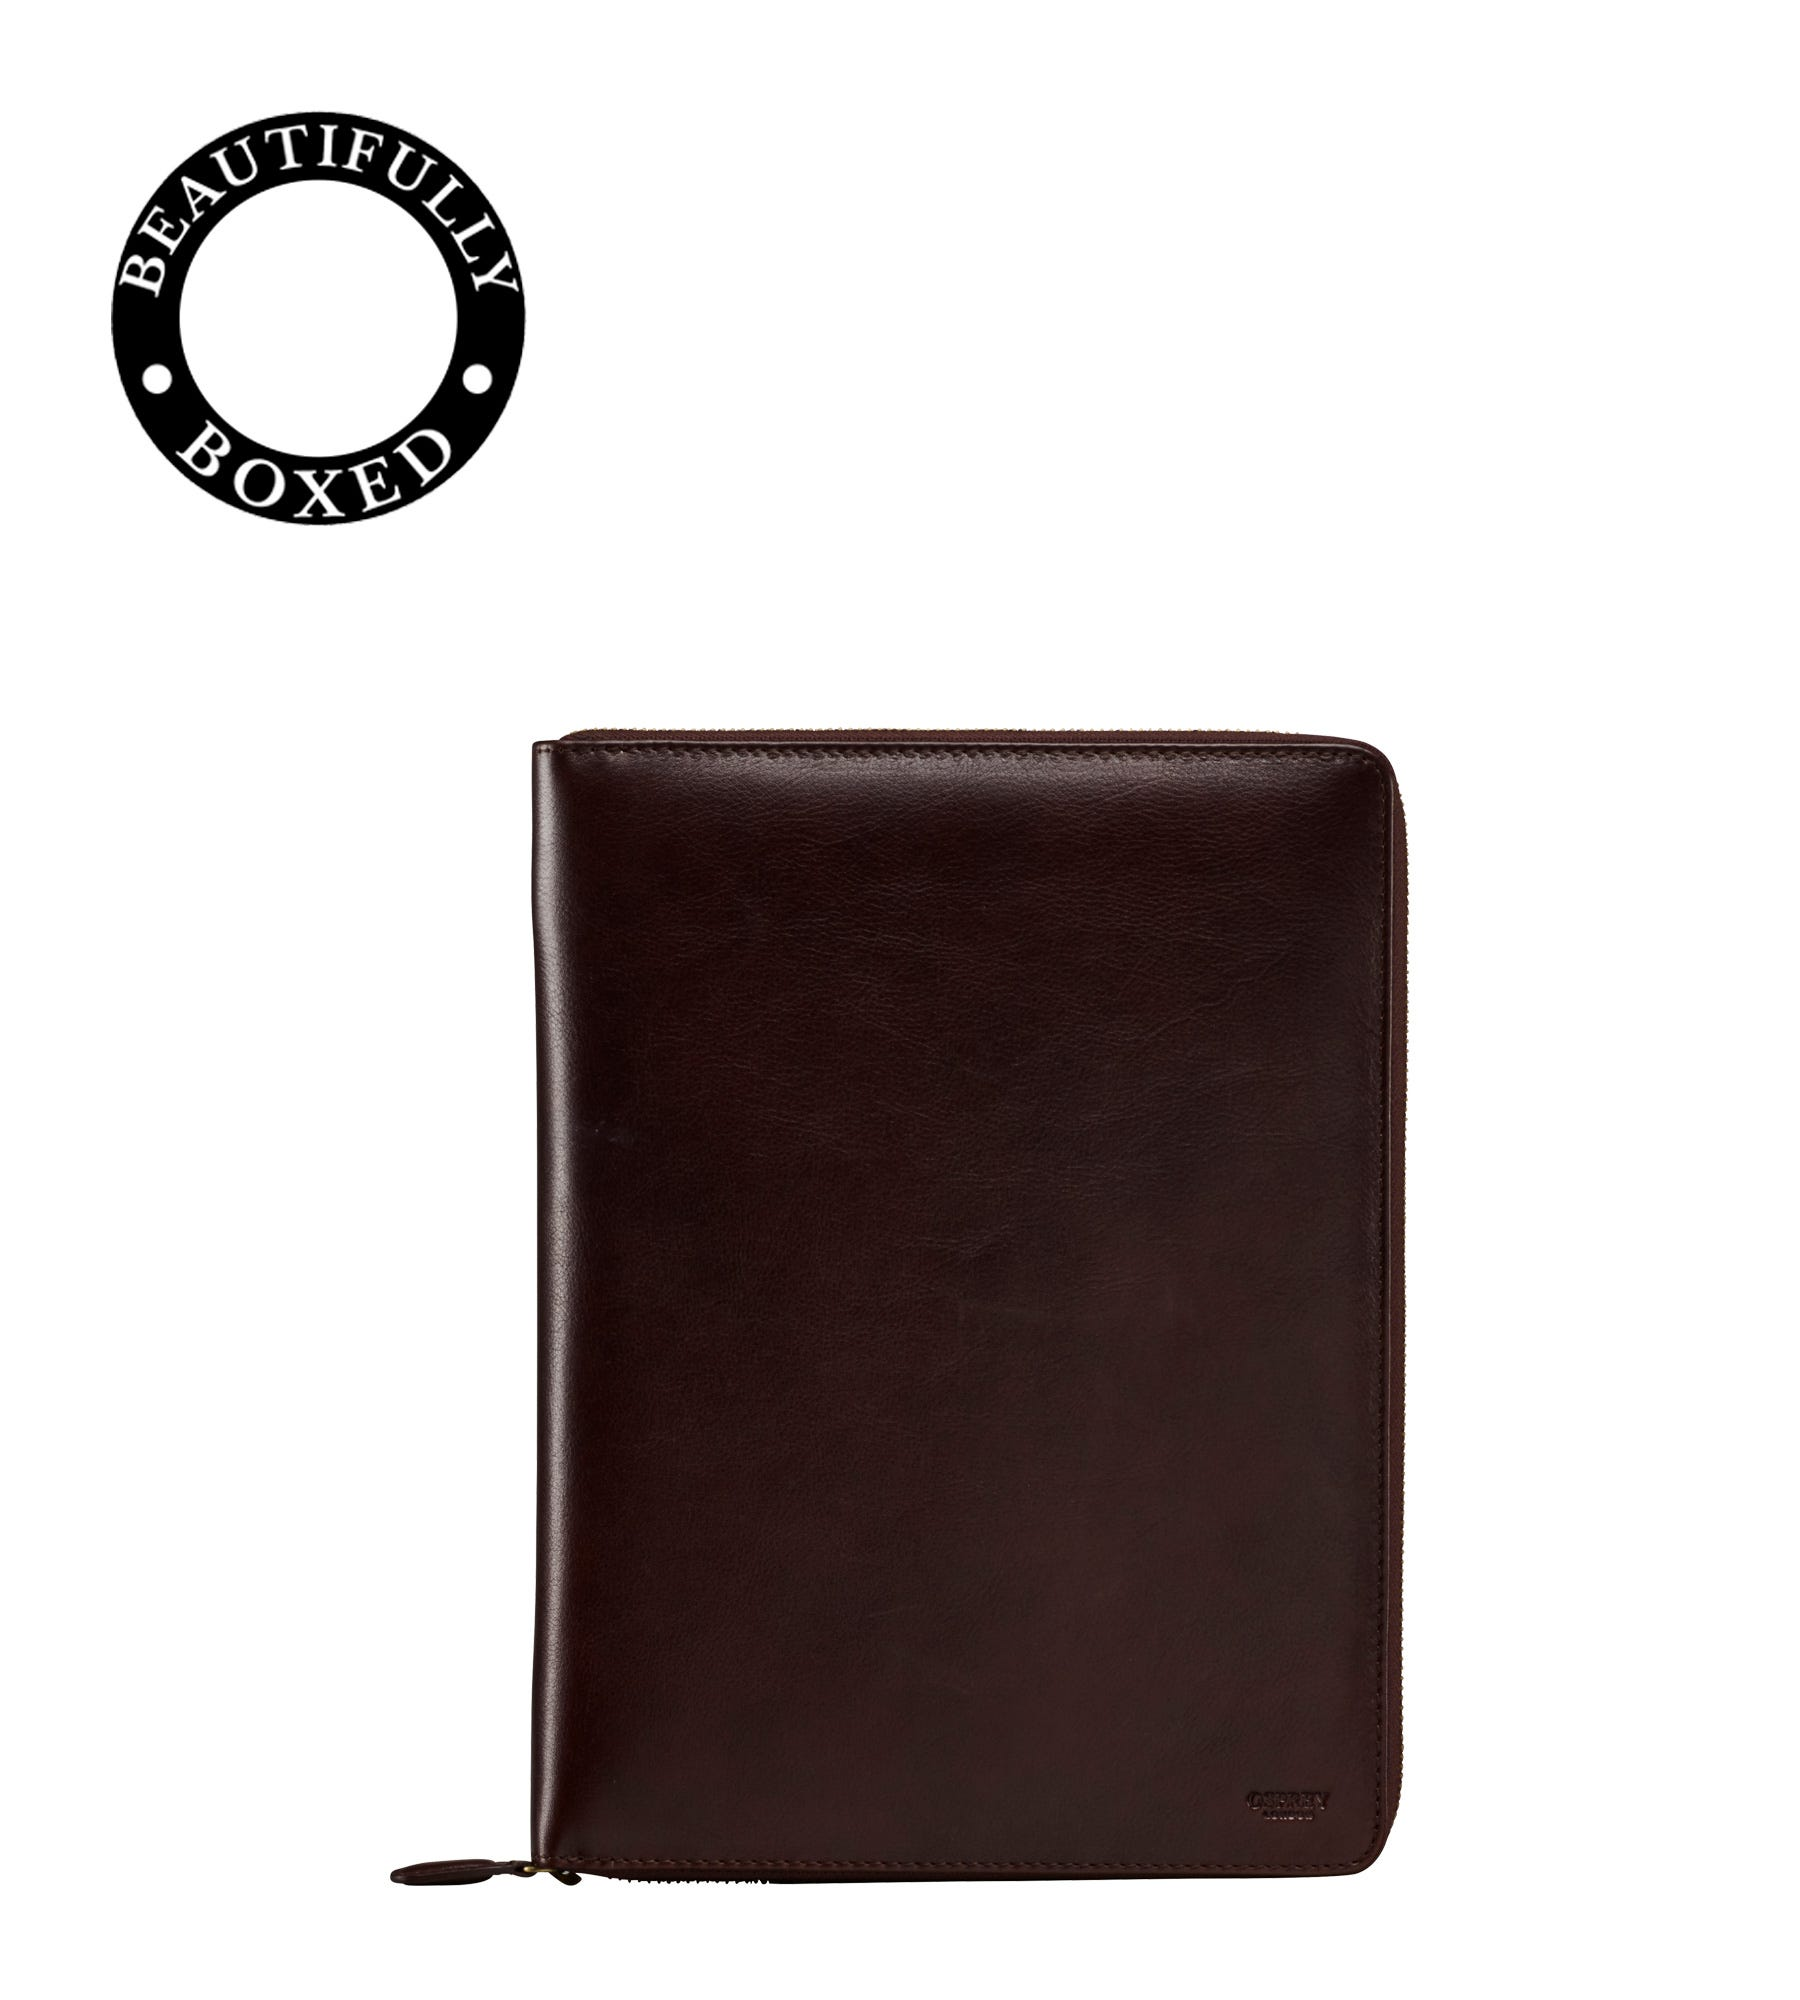 An image of The Spencer A5 Leather Document Case